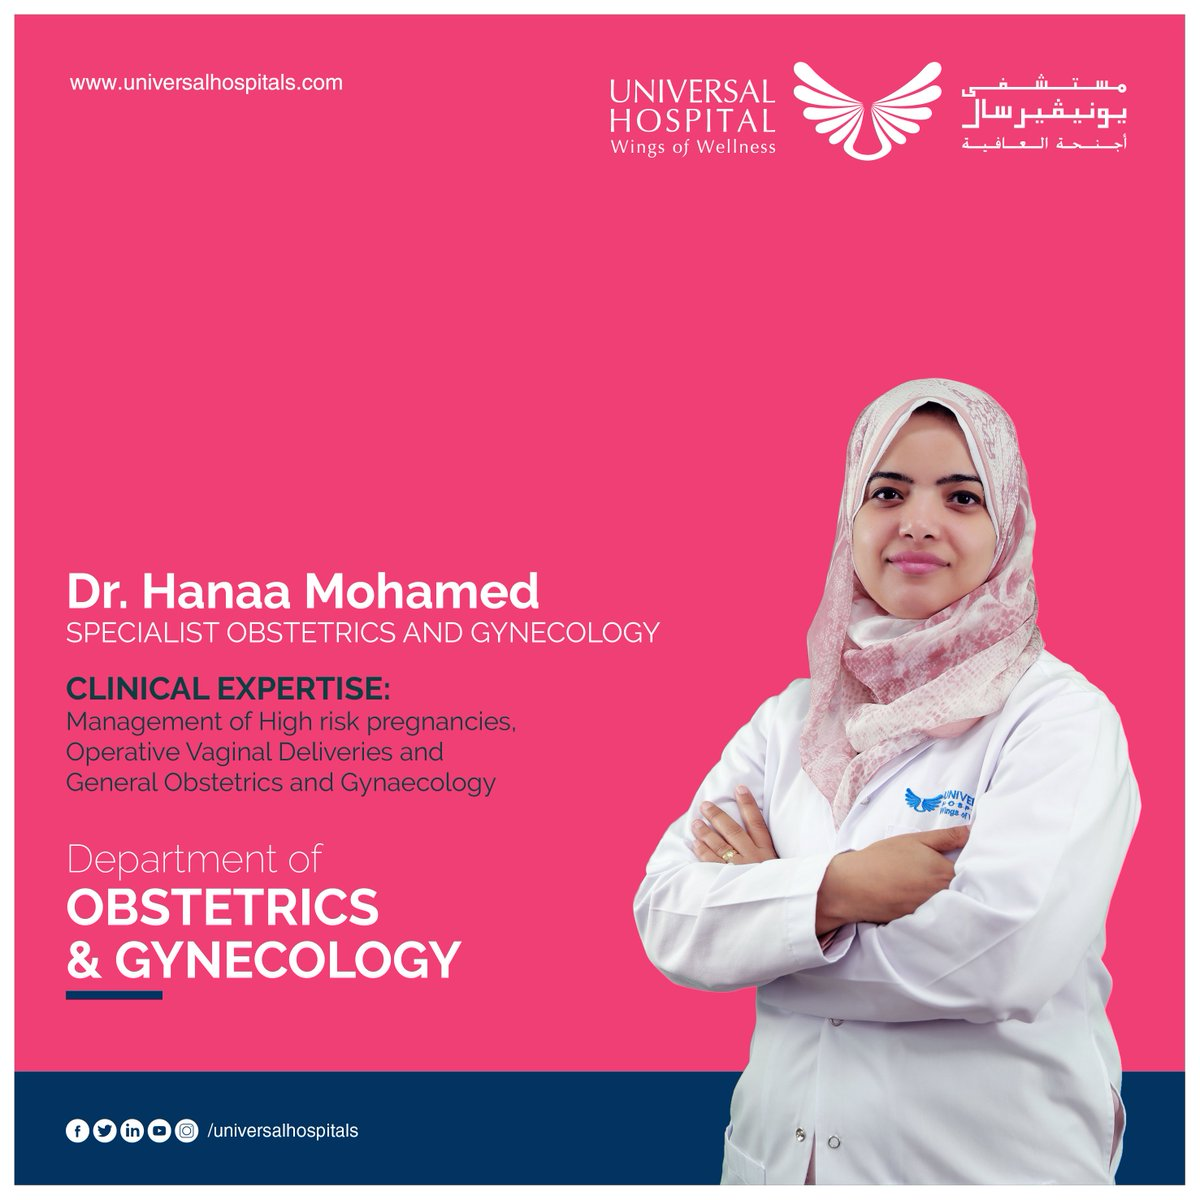 Ensuring Women's Care  Universal Hospital, Obstetrics and Gynecology Department has highly experienced and well-qualified Gynecologist who offer specialized attention and compassionate care for women.   #Obstetrics #OBGYN #Gynecology #care #Prenatal #pregnancy #child #family